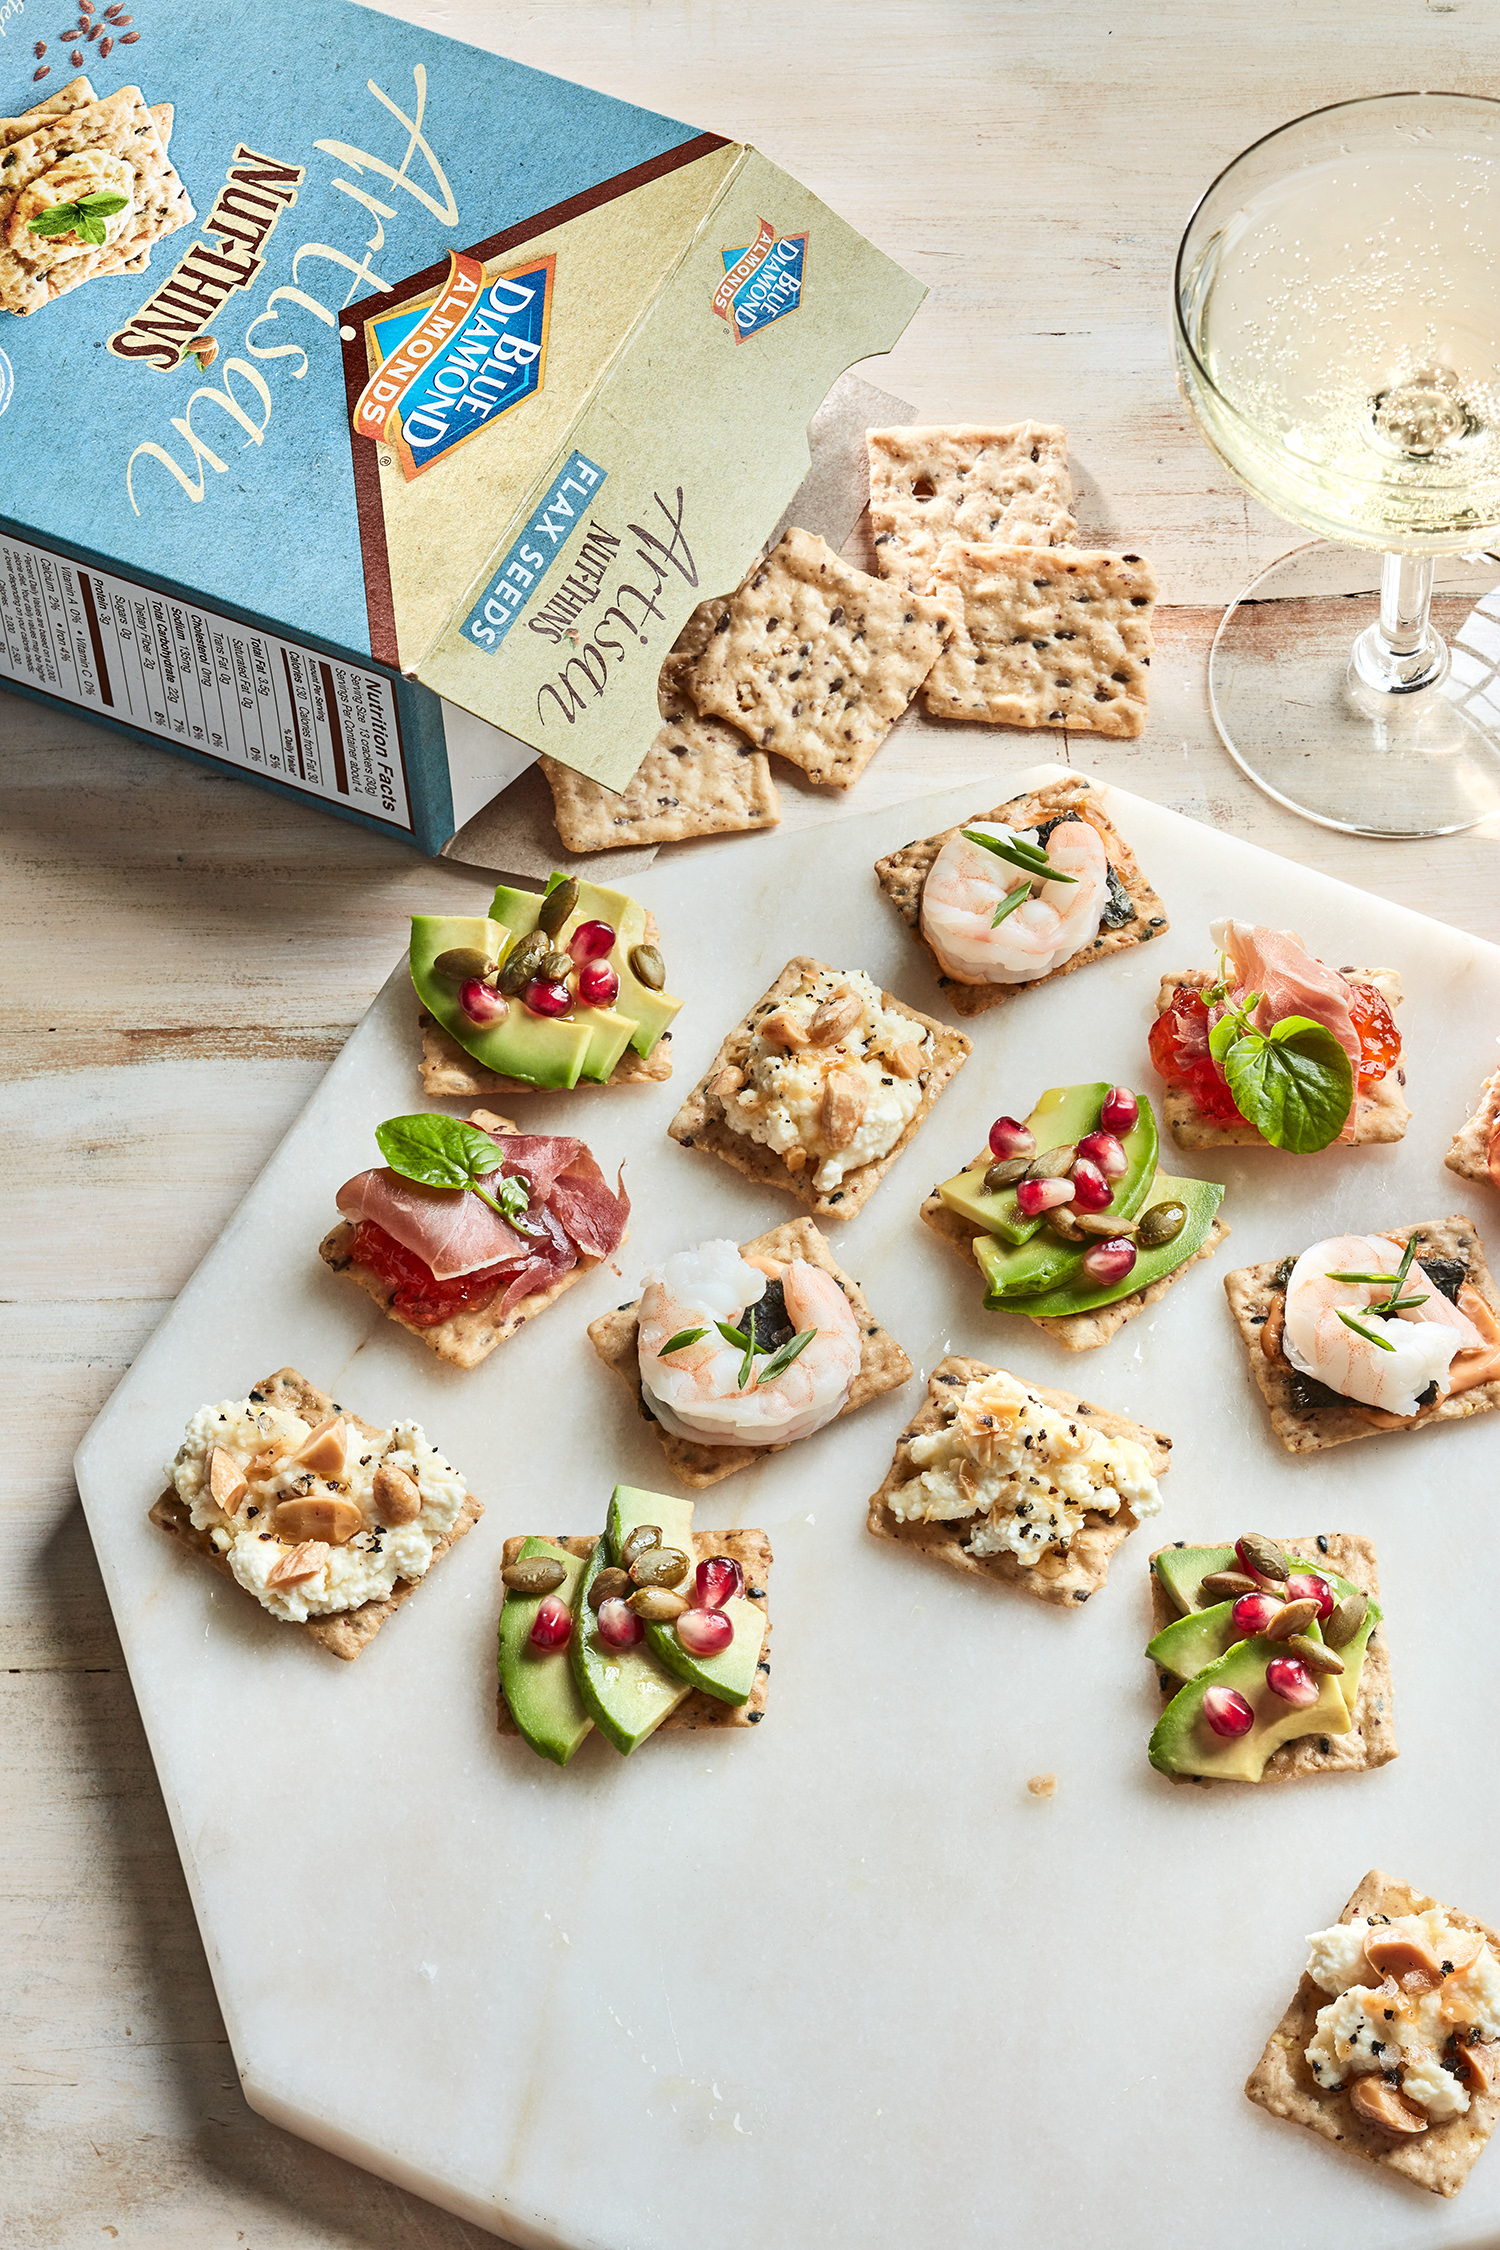 crackers with all toppings and blue diamond box